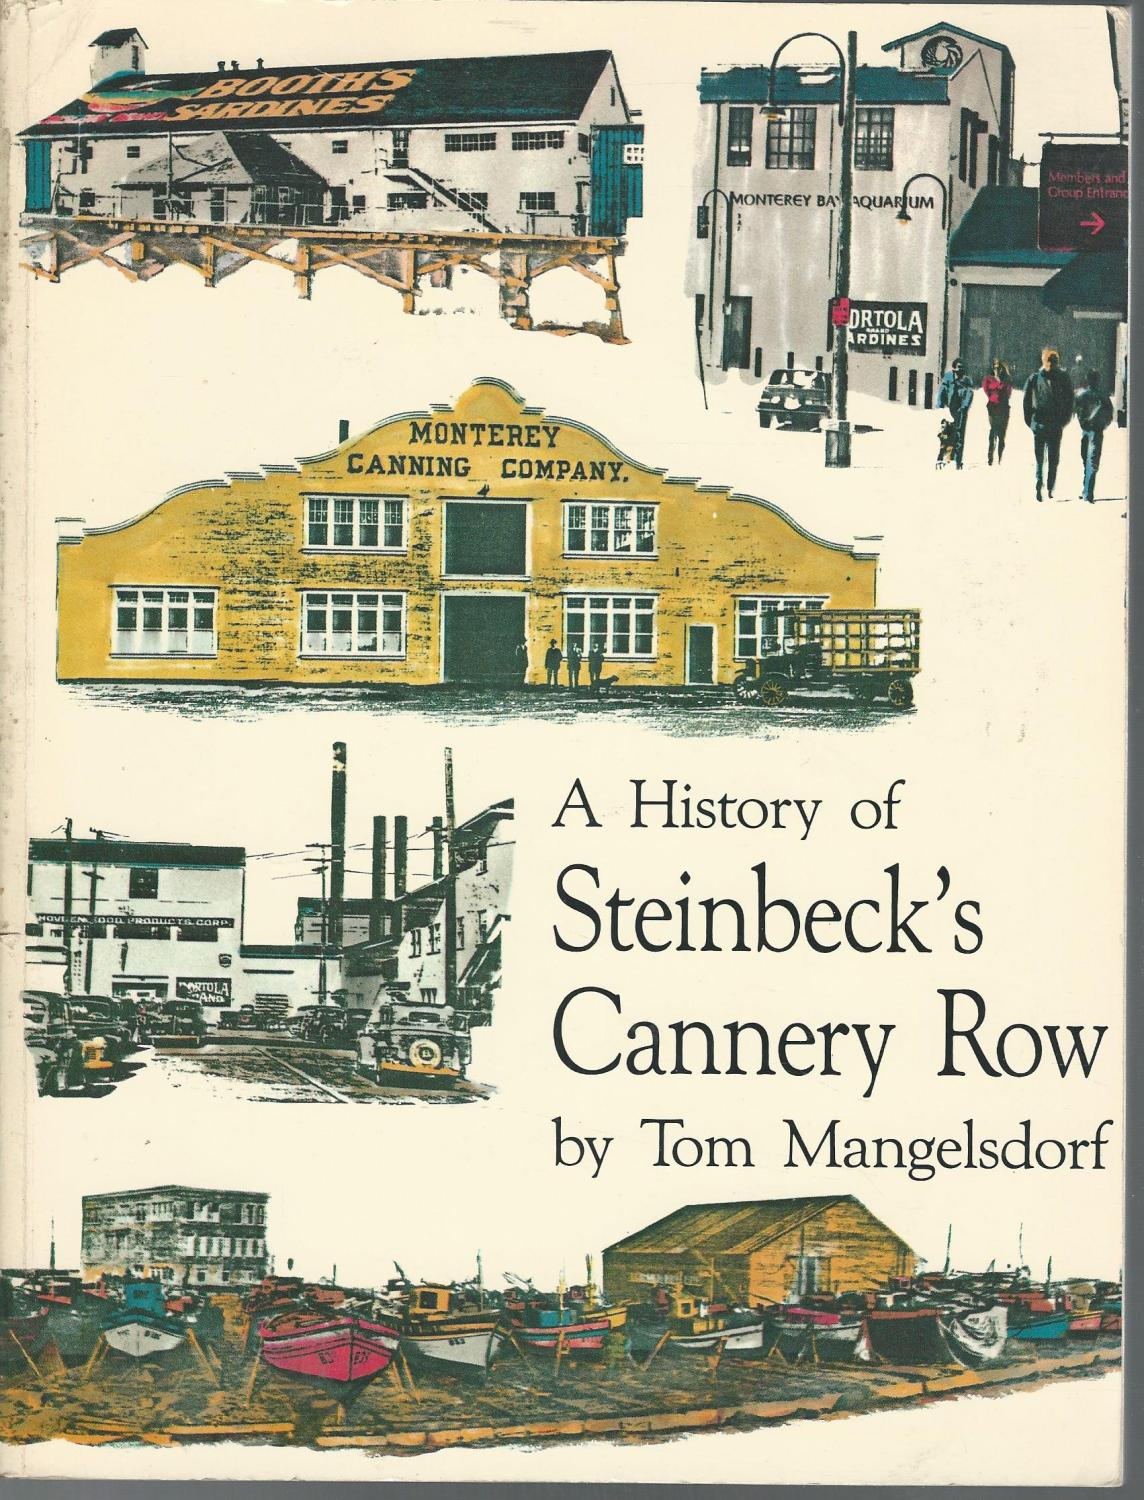 cannery row essay Cannery row as the title suggests, cannery row is a glimpse into the life and times of the residents of cannery row, which is situated in the beautiful monterey.